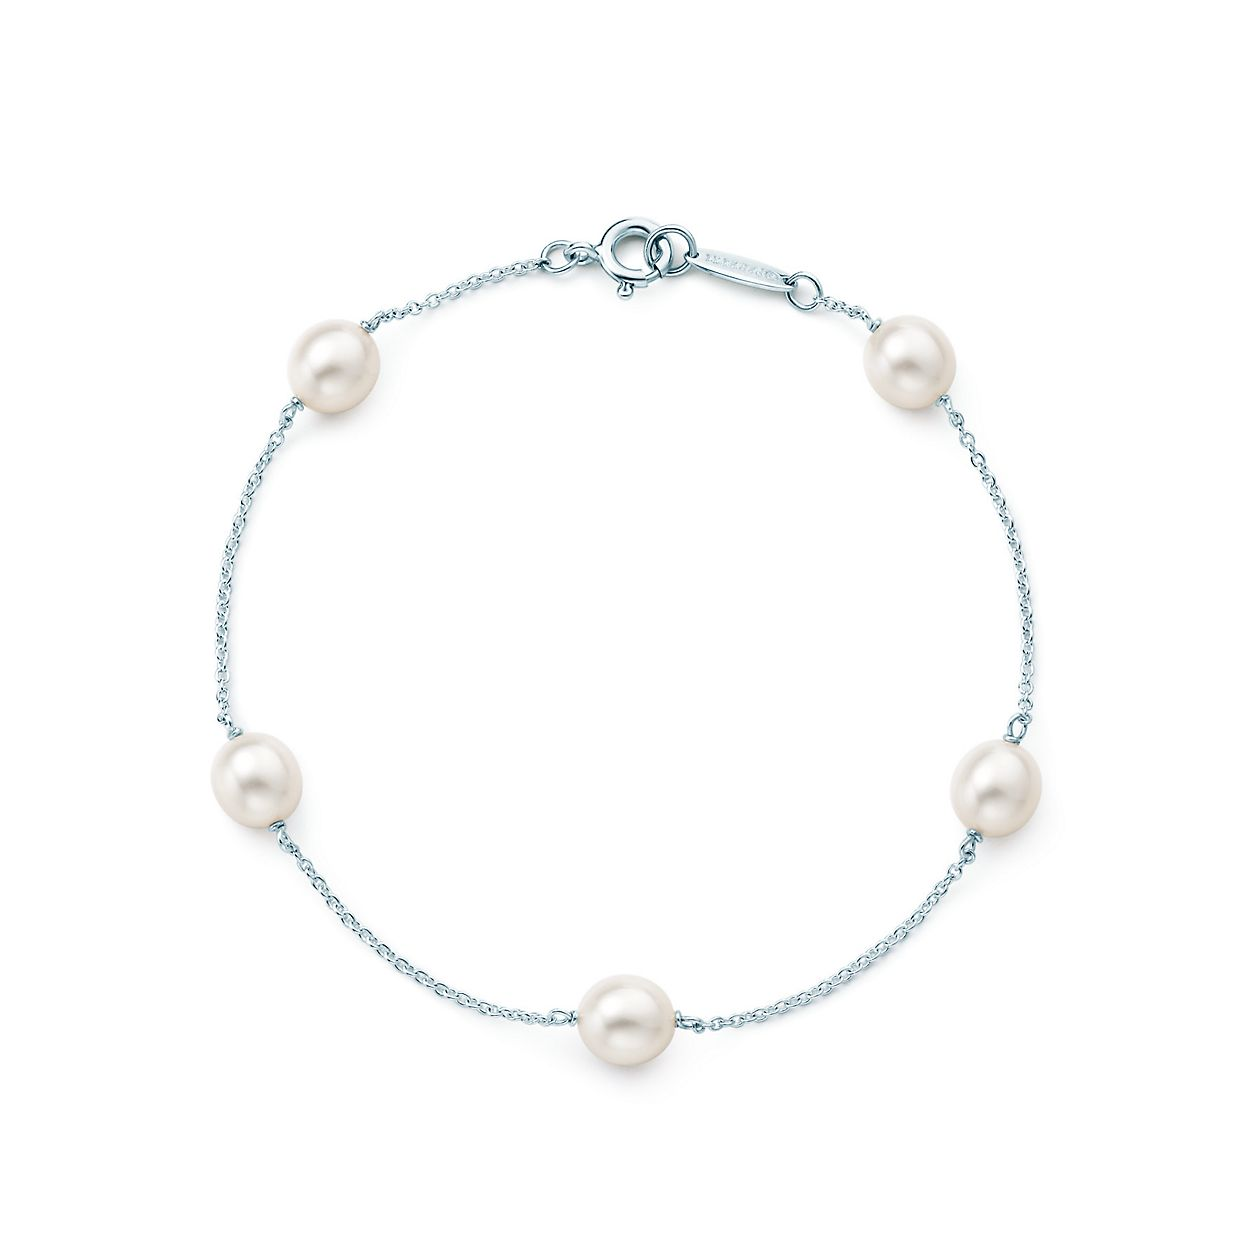 the pearls anchor patrick champagne bracelet usa james made and in products kiel jewellery